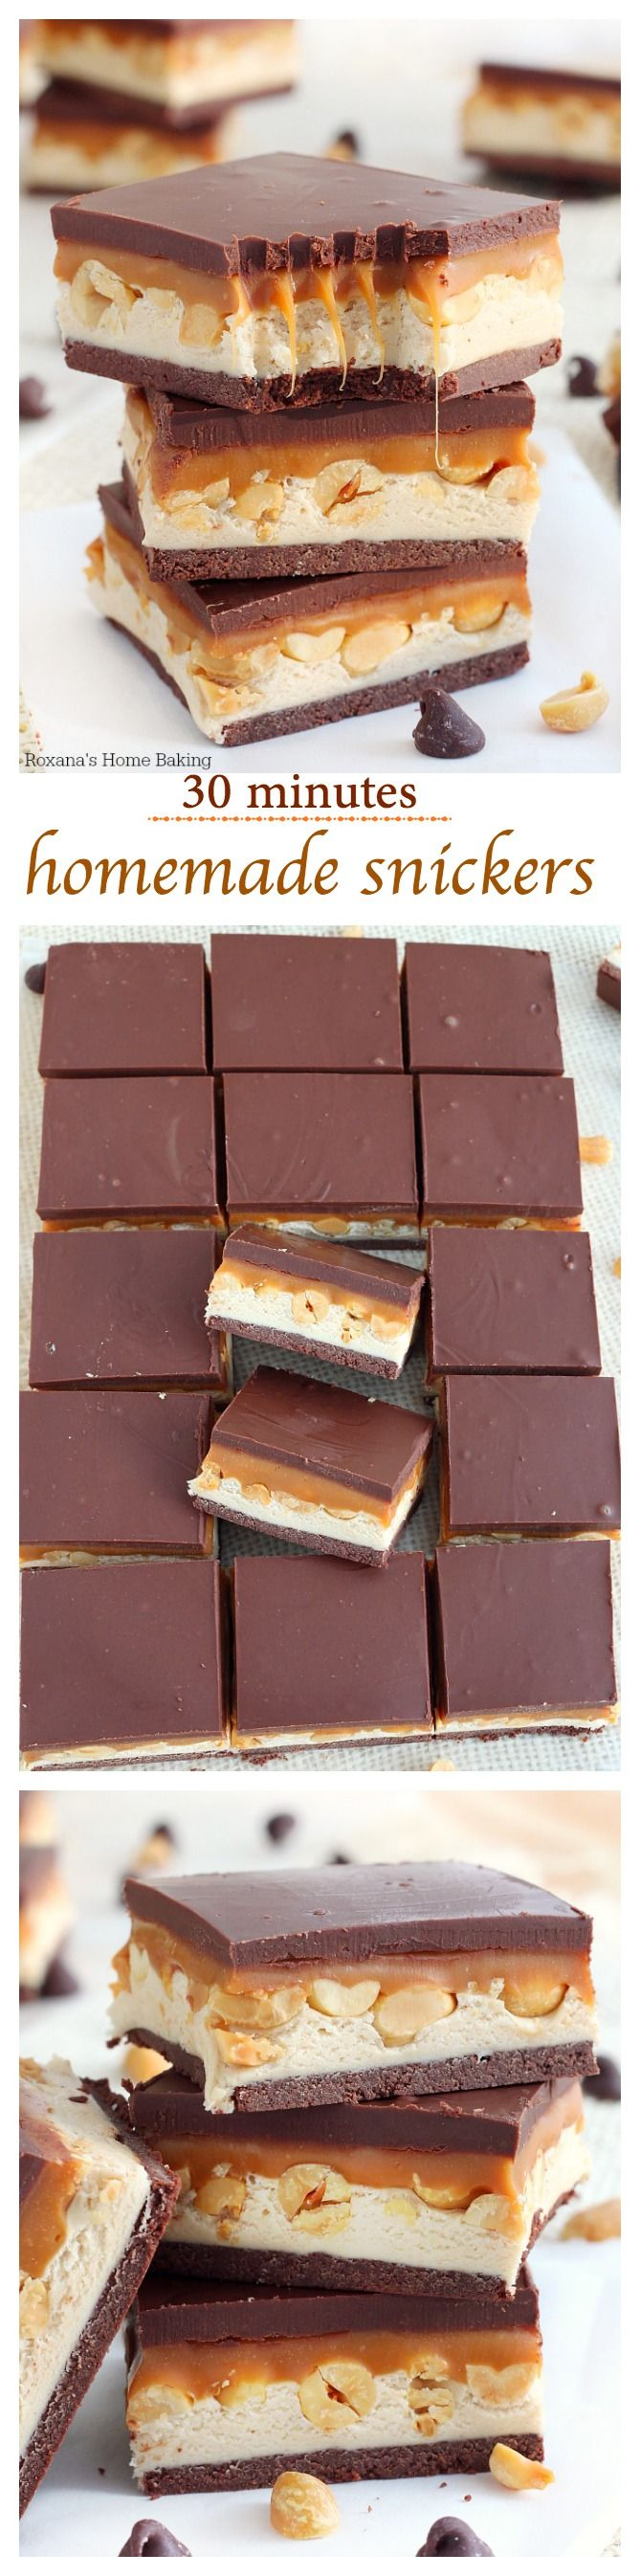 30-Minute Homemade Snickers ~ nougat, peanuts and caramel sandwiched between two chocolate layers, these homemade bars come together in 30 minutes